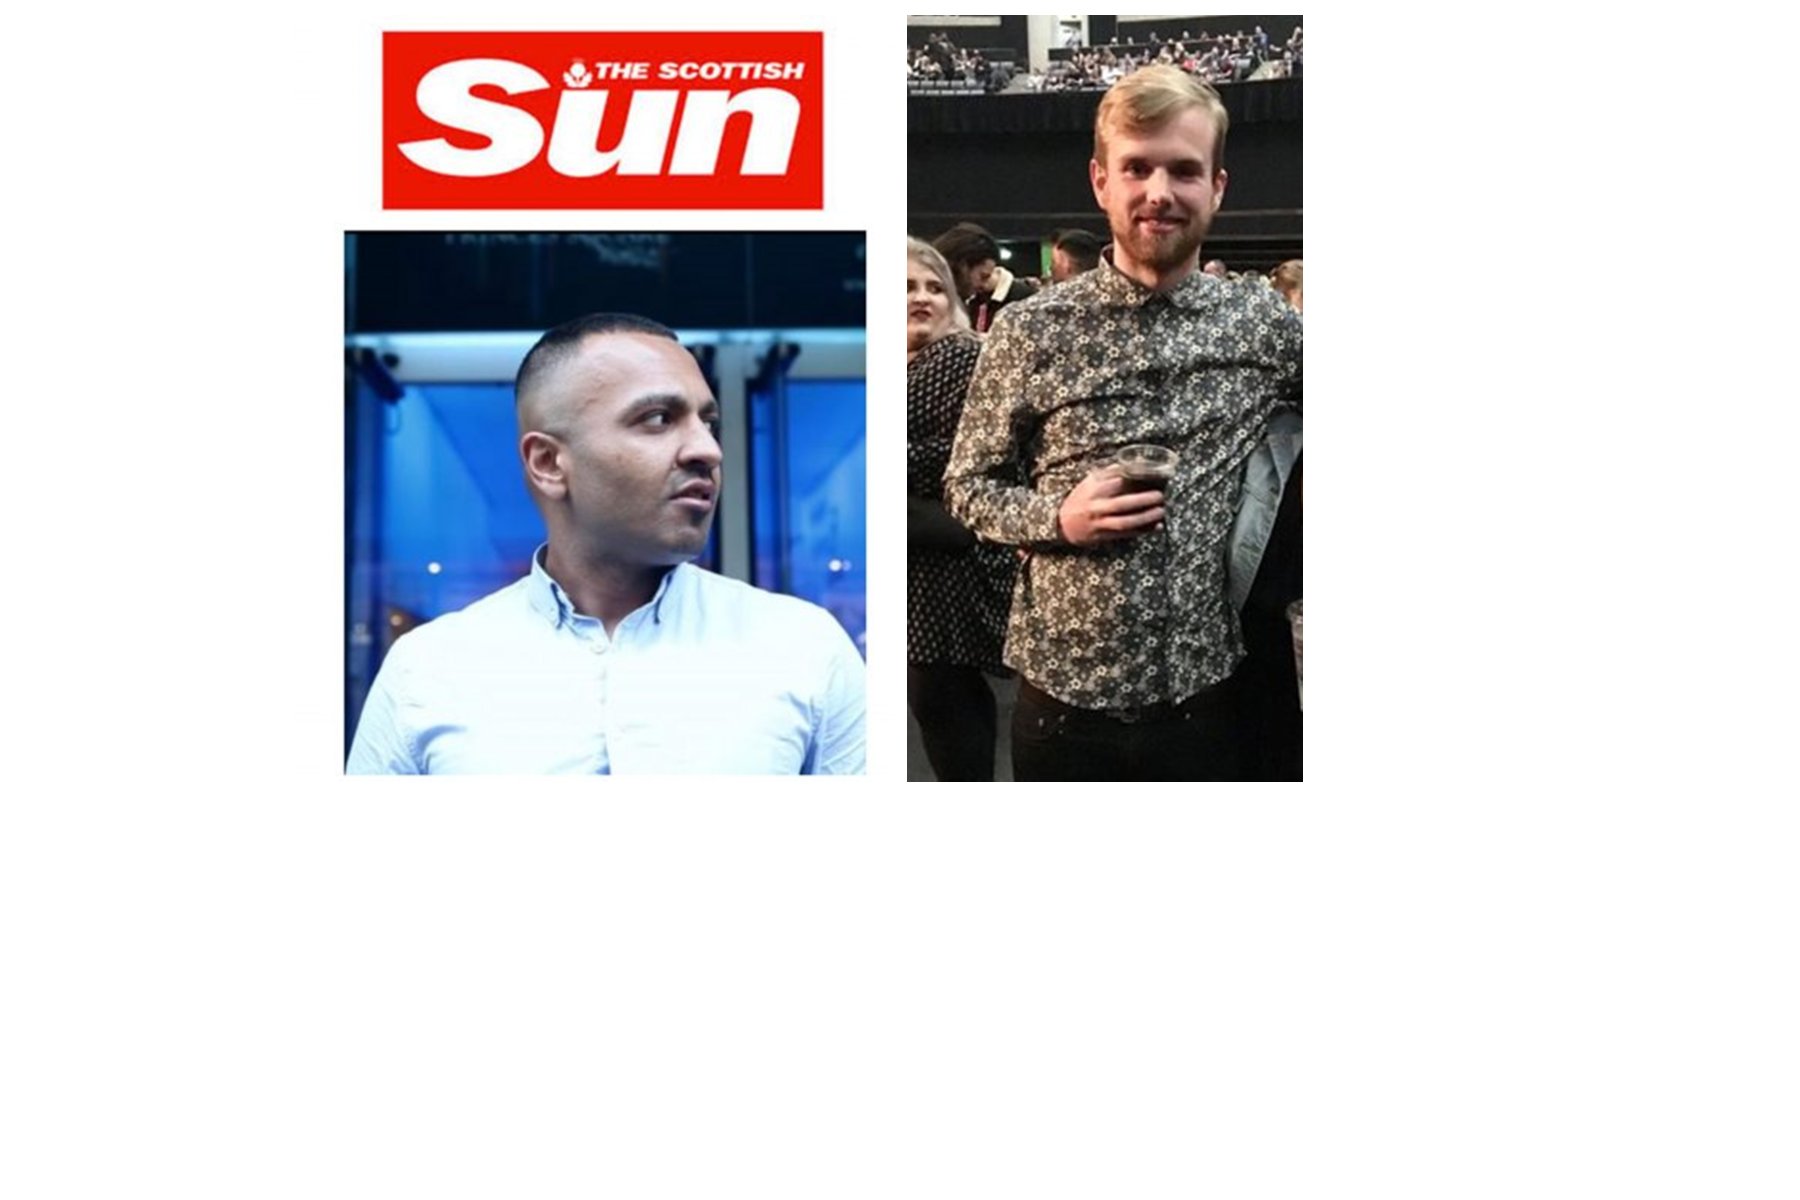 Creepy Coward Blair Meikle (The Sun) Writes Hate-Article About Adnan Ahmed's Previous Convictions, Despite Ahmed Being Fully Rehabilitated